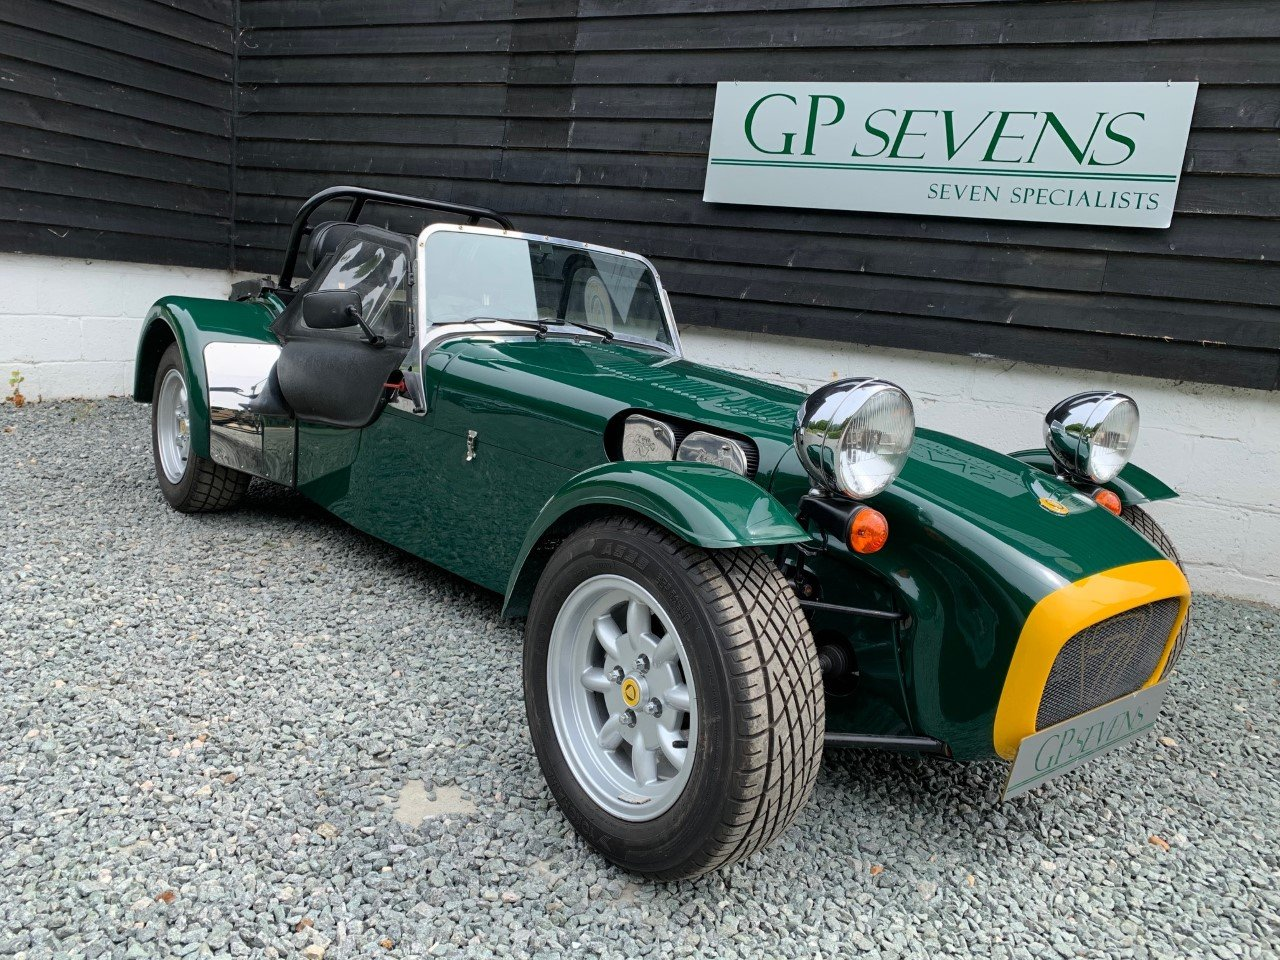 1998 Caterham Classic 1.6 Ford X Flow 100bhp 4 speed For Sale (picture 1 of 6)